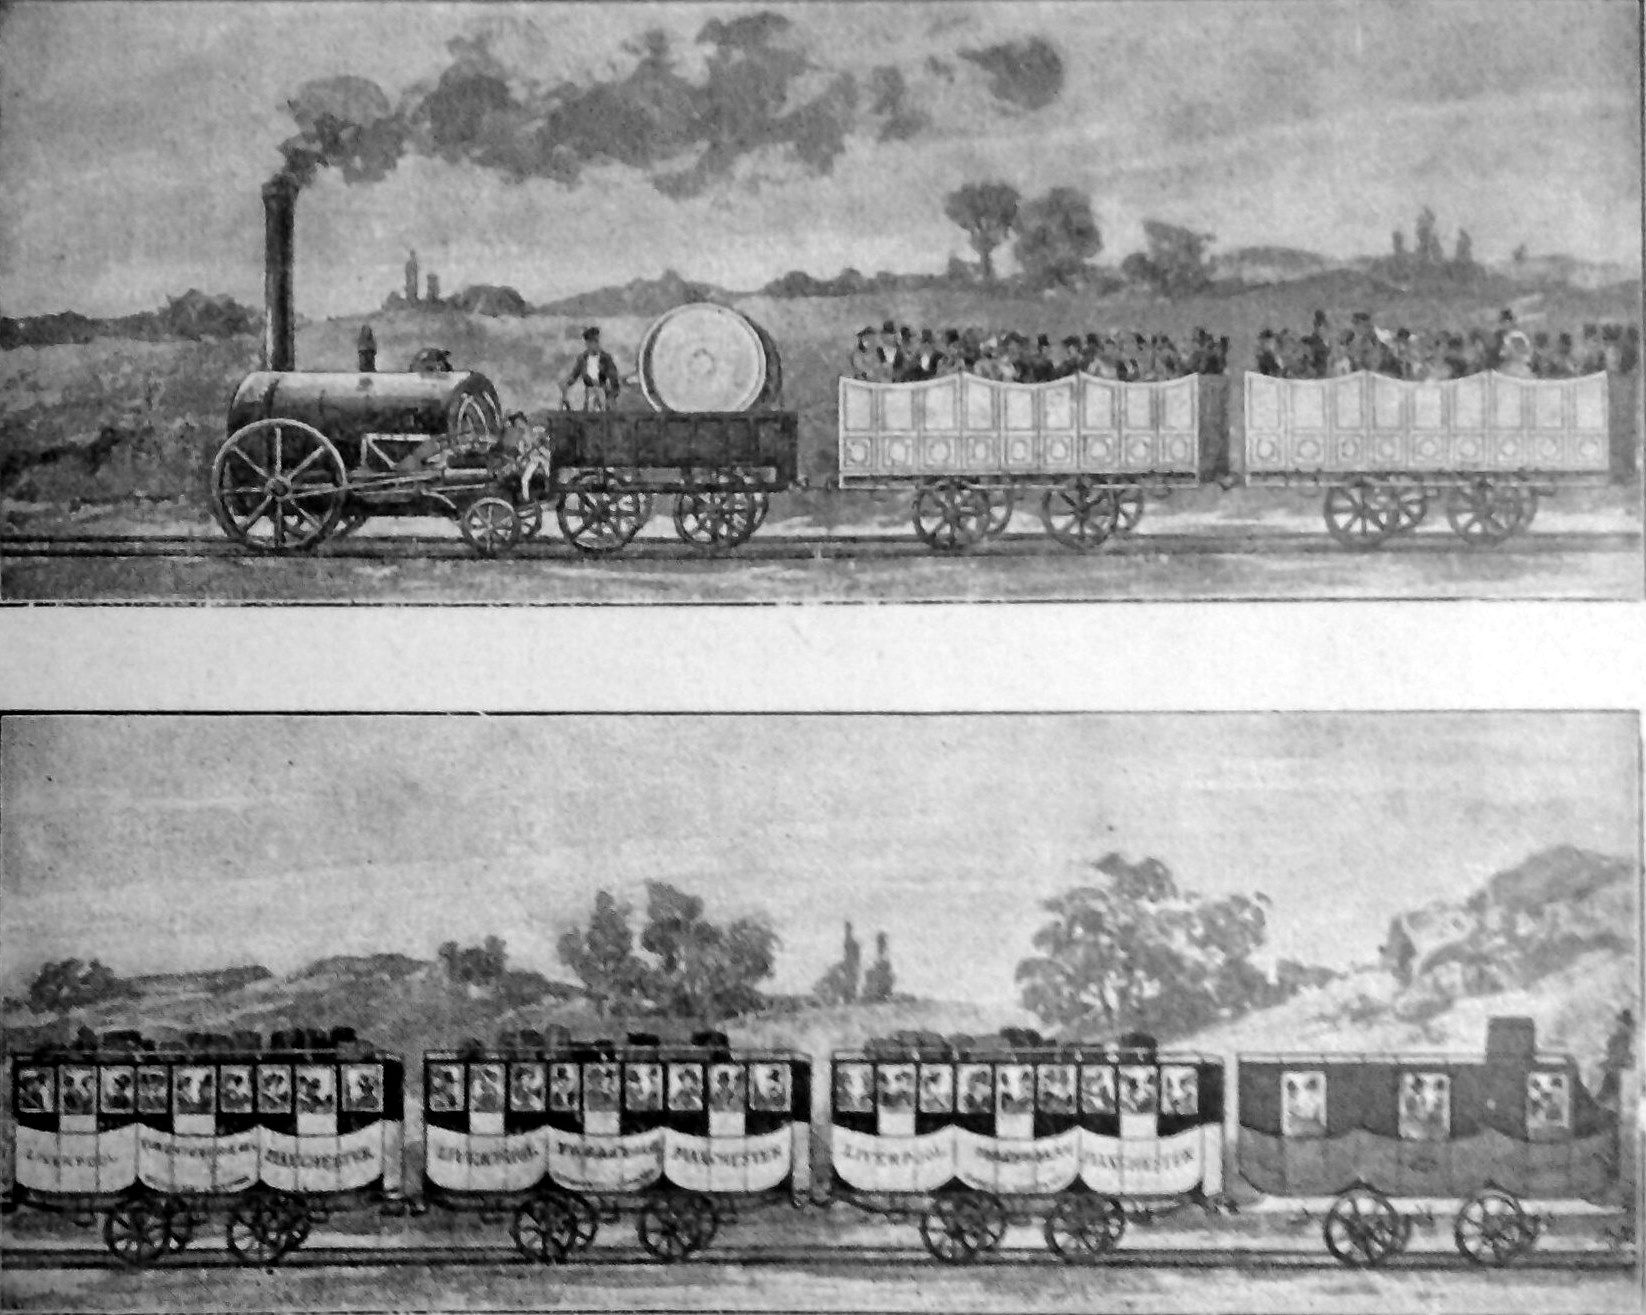 Who Invented the Steam Locomotive Engine?